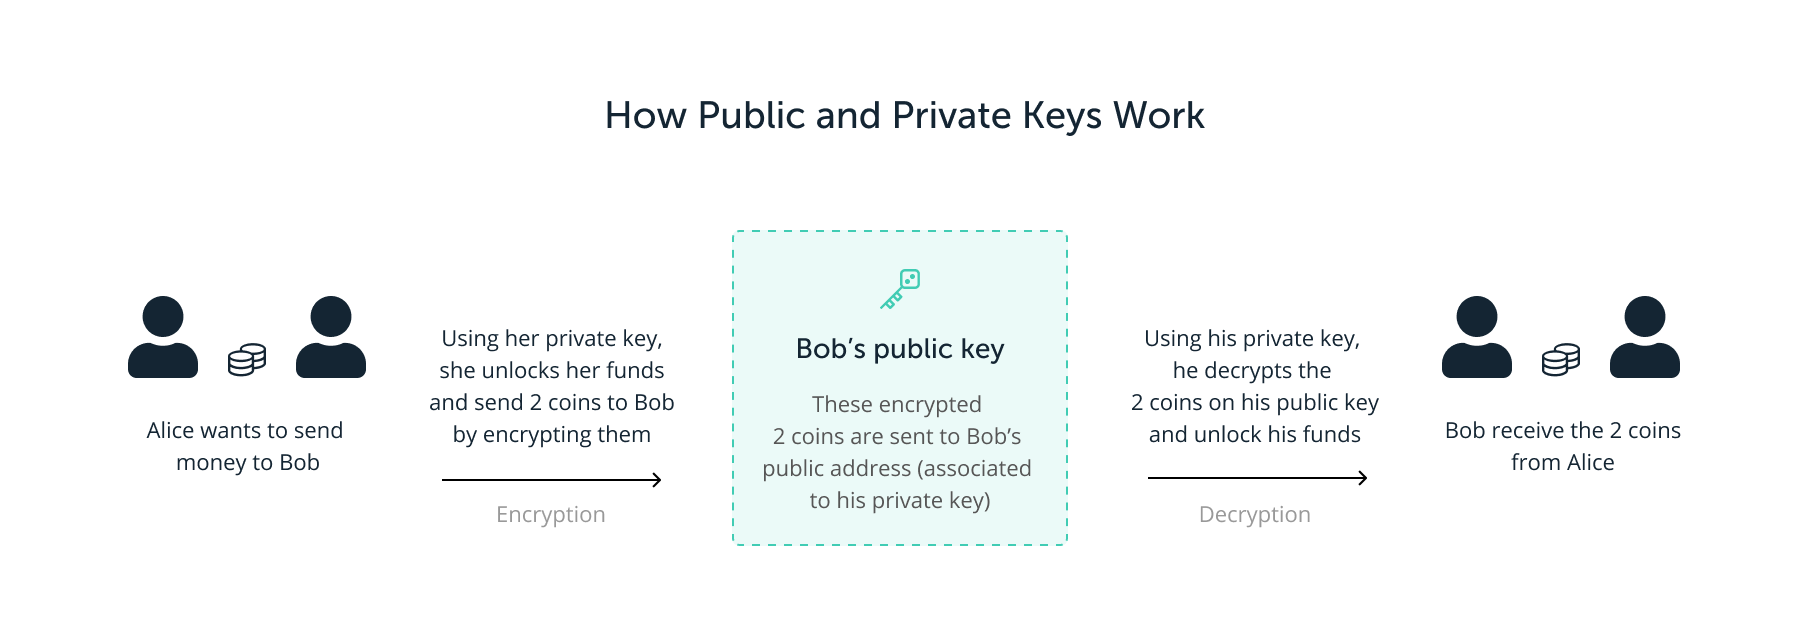 How public key and private key work